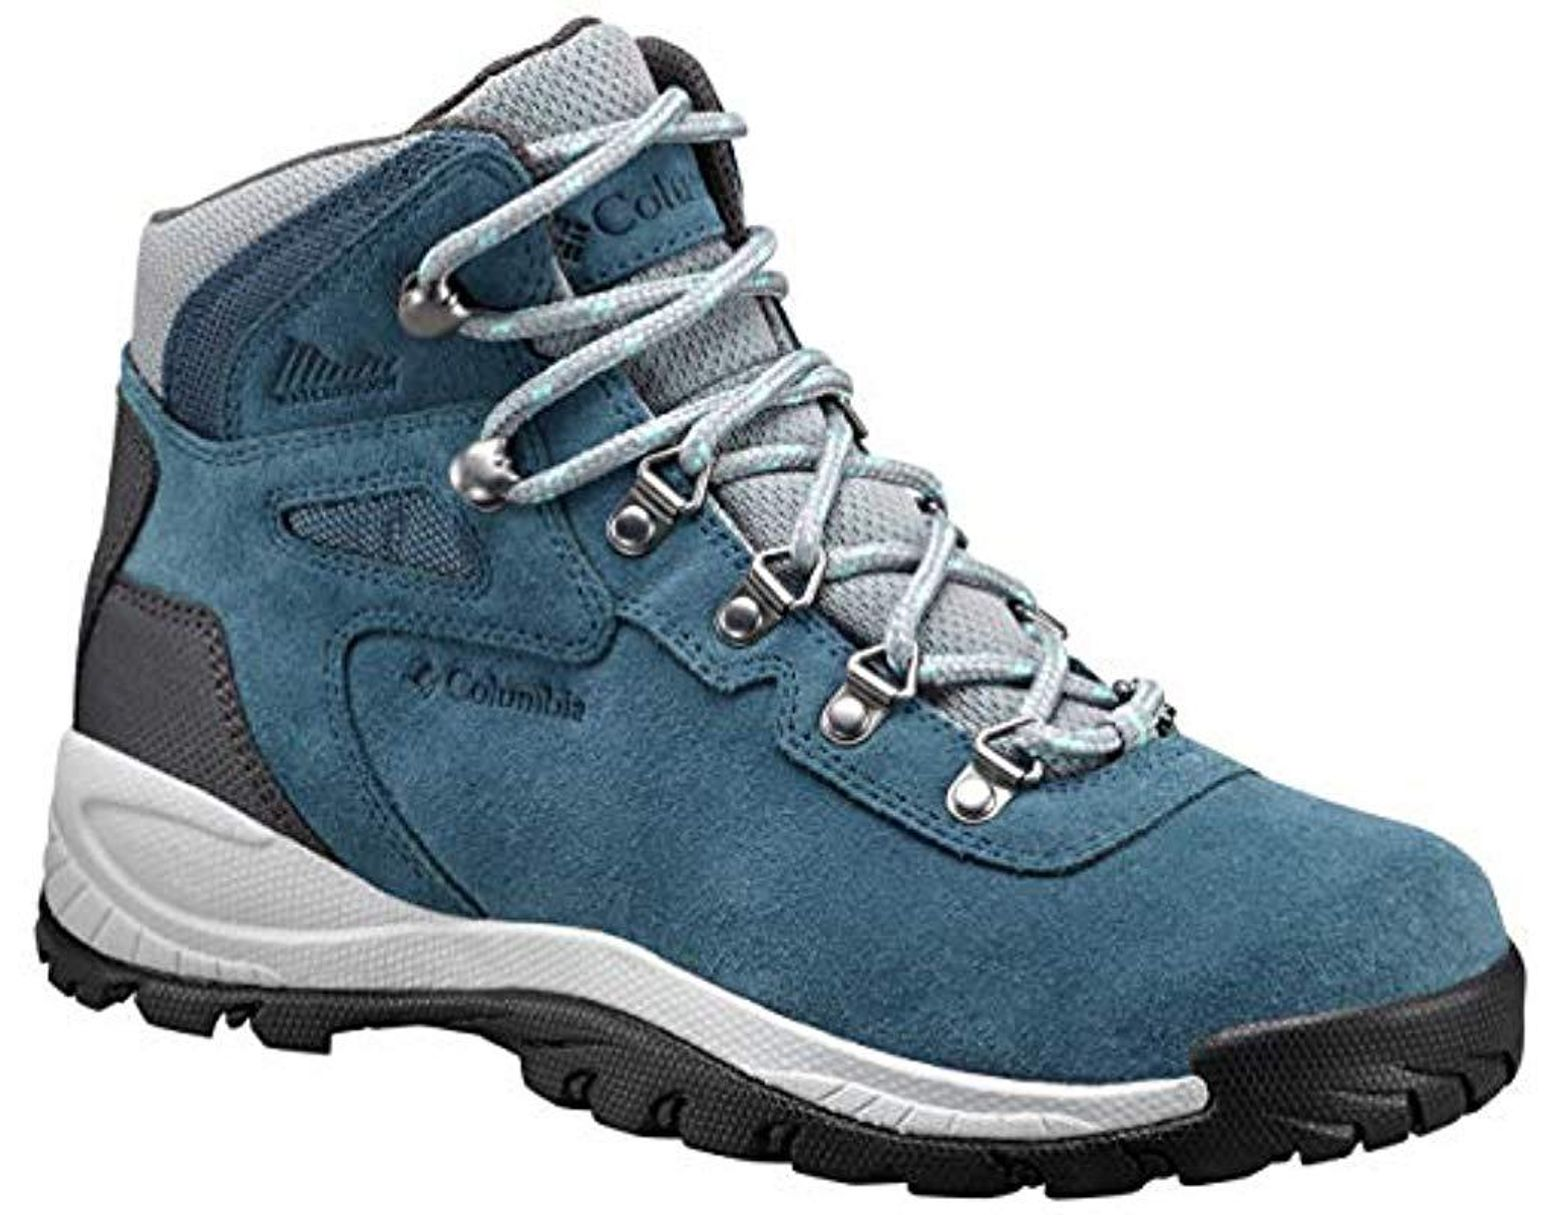 627a0d7b448 Women's Blue Newton Ridge Plus Waterproof Amped Hiking Boot